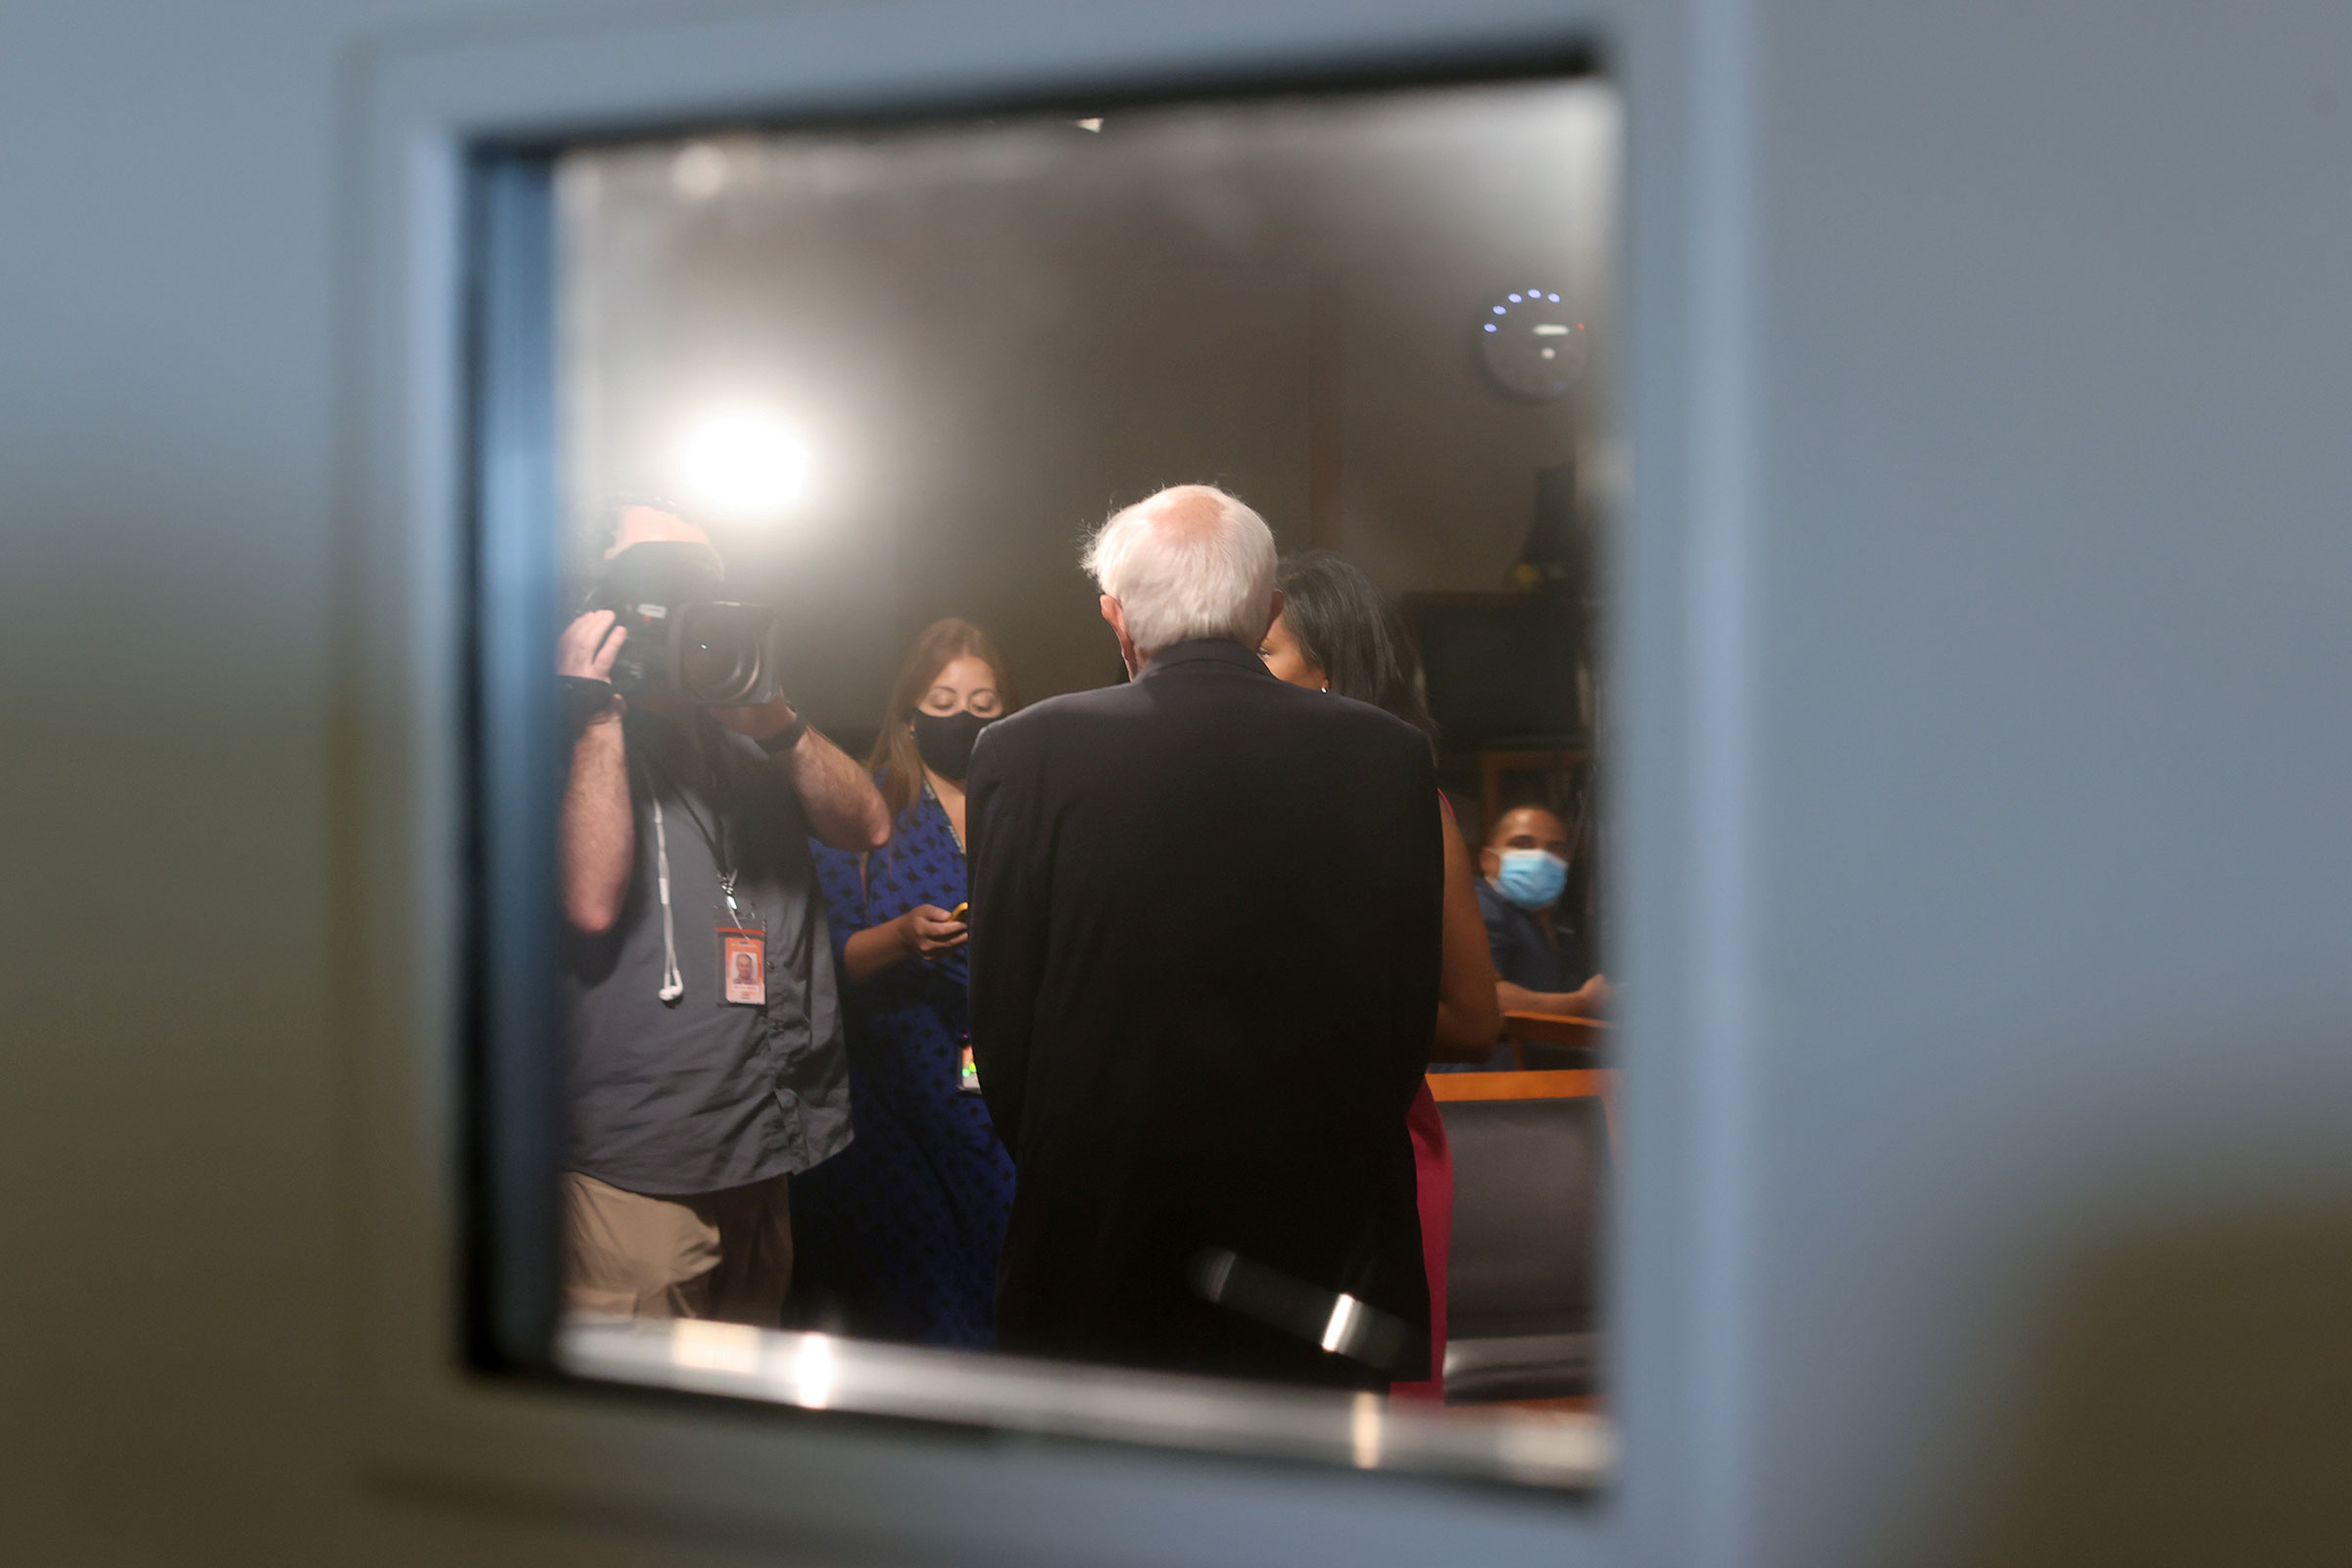 Sanders takes time for a television interview between votes on the Senate floor prior to passage of a $1 trillion bipartisan infrastructure bill on Aug. 10.